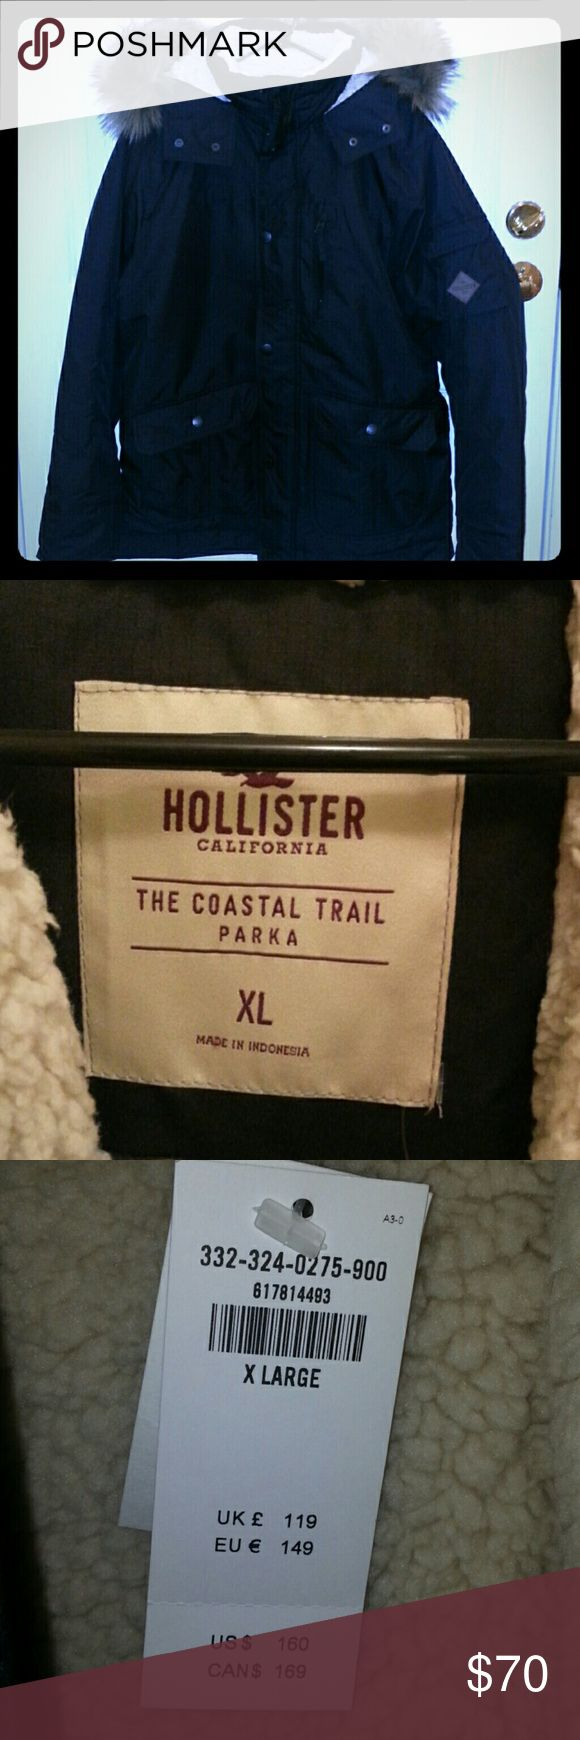 Hollister men parka NWT Black men parka from hollister. Brand new never been worn. Size XL.  Sherpa lined for warmth. Hollister Jackets & Coats